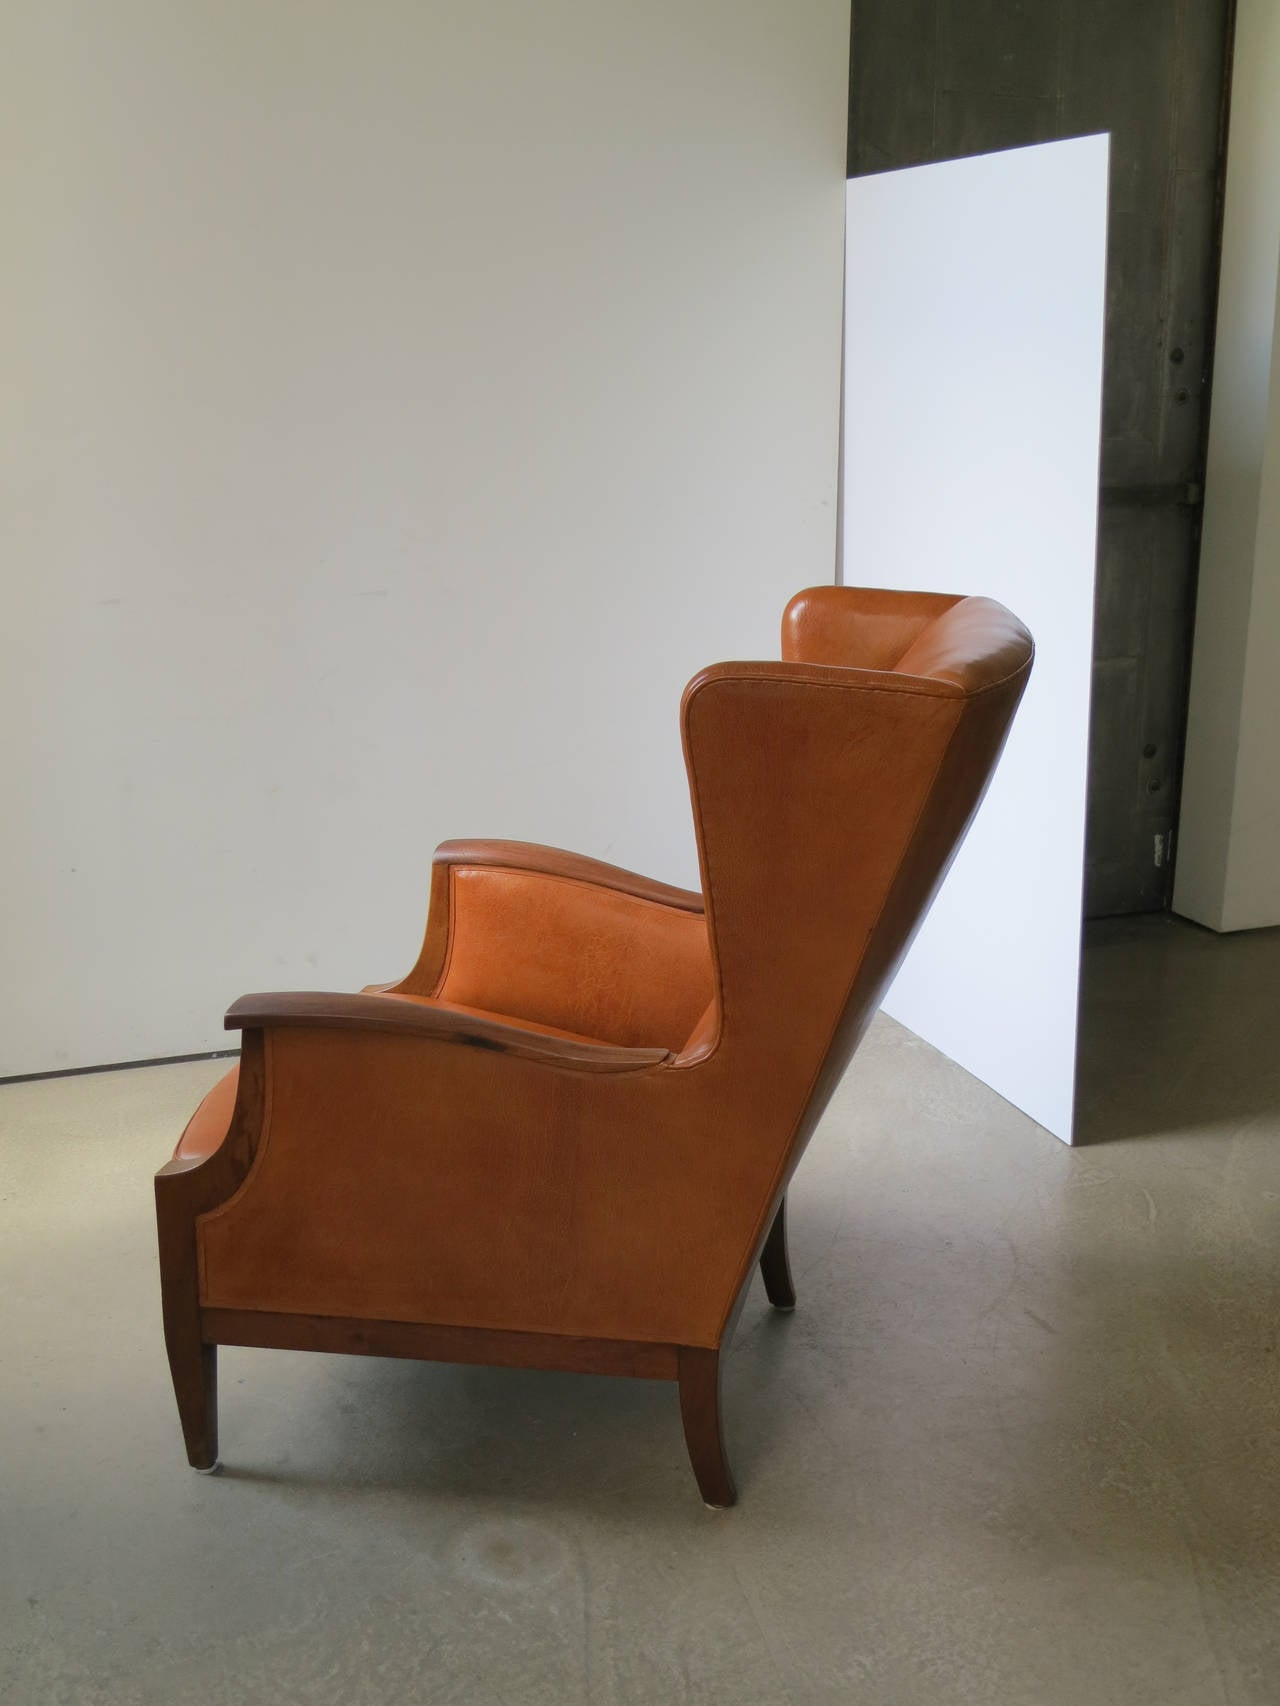 Scandinavian Modern 1930s Wingback Chair in Nigerian Leather and Cuban Mahogany by Frits Henningsen For Sale